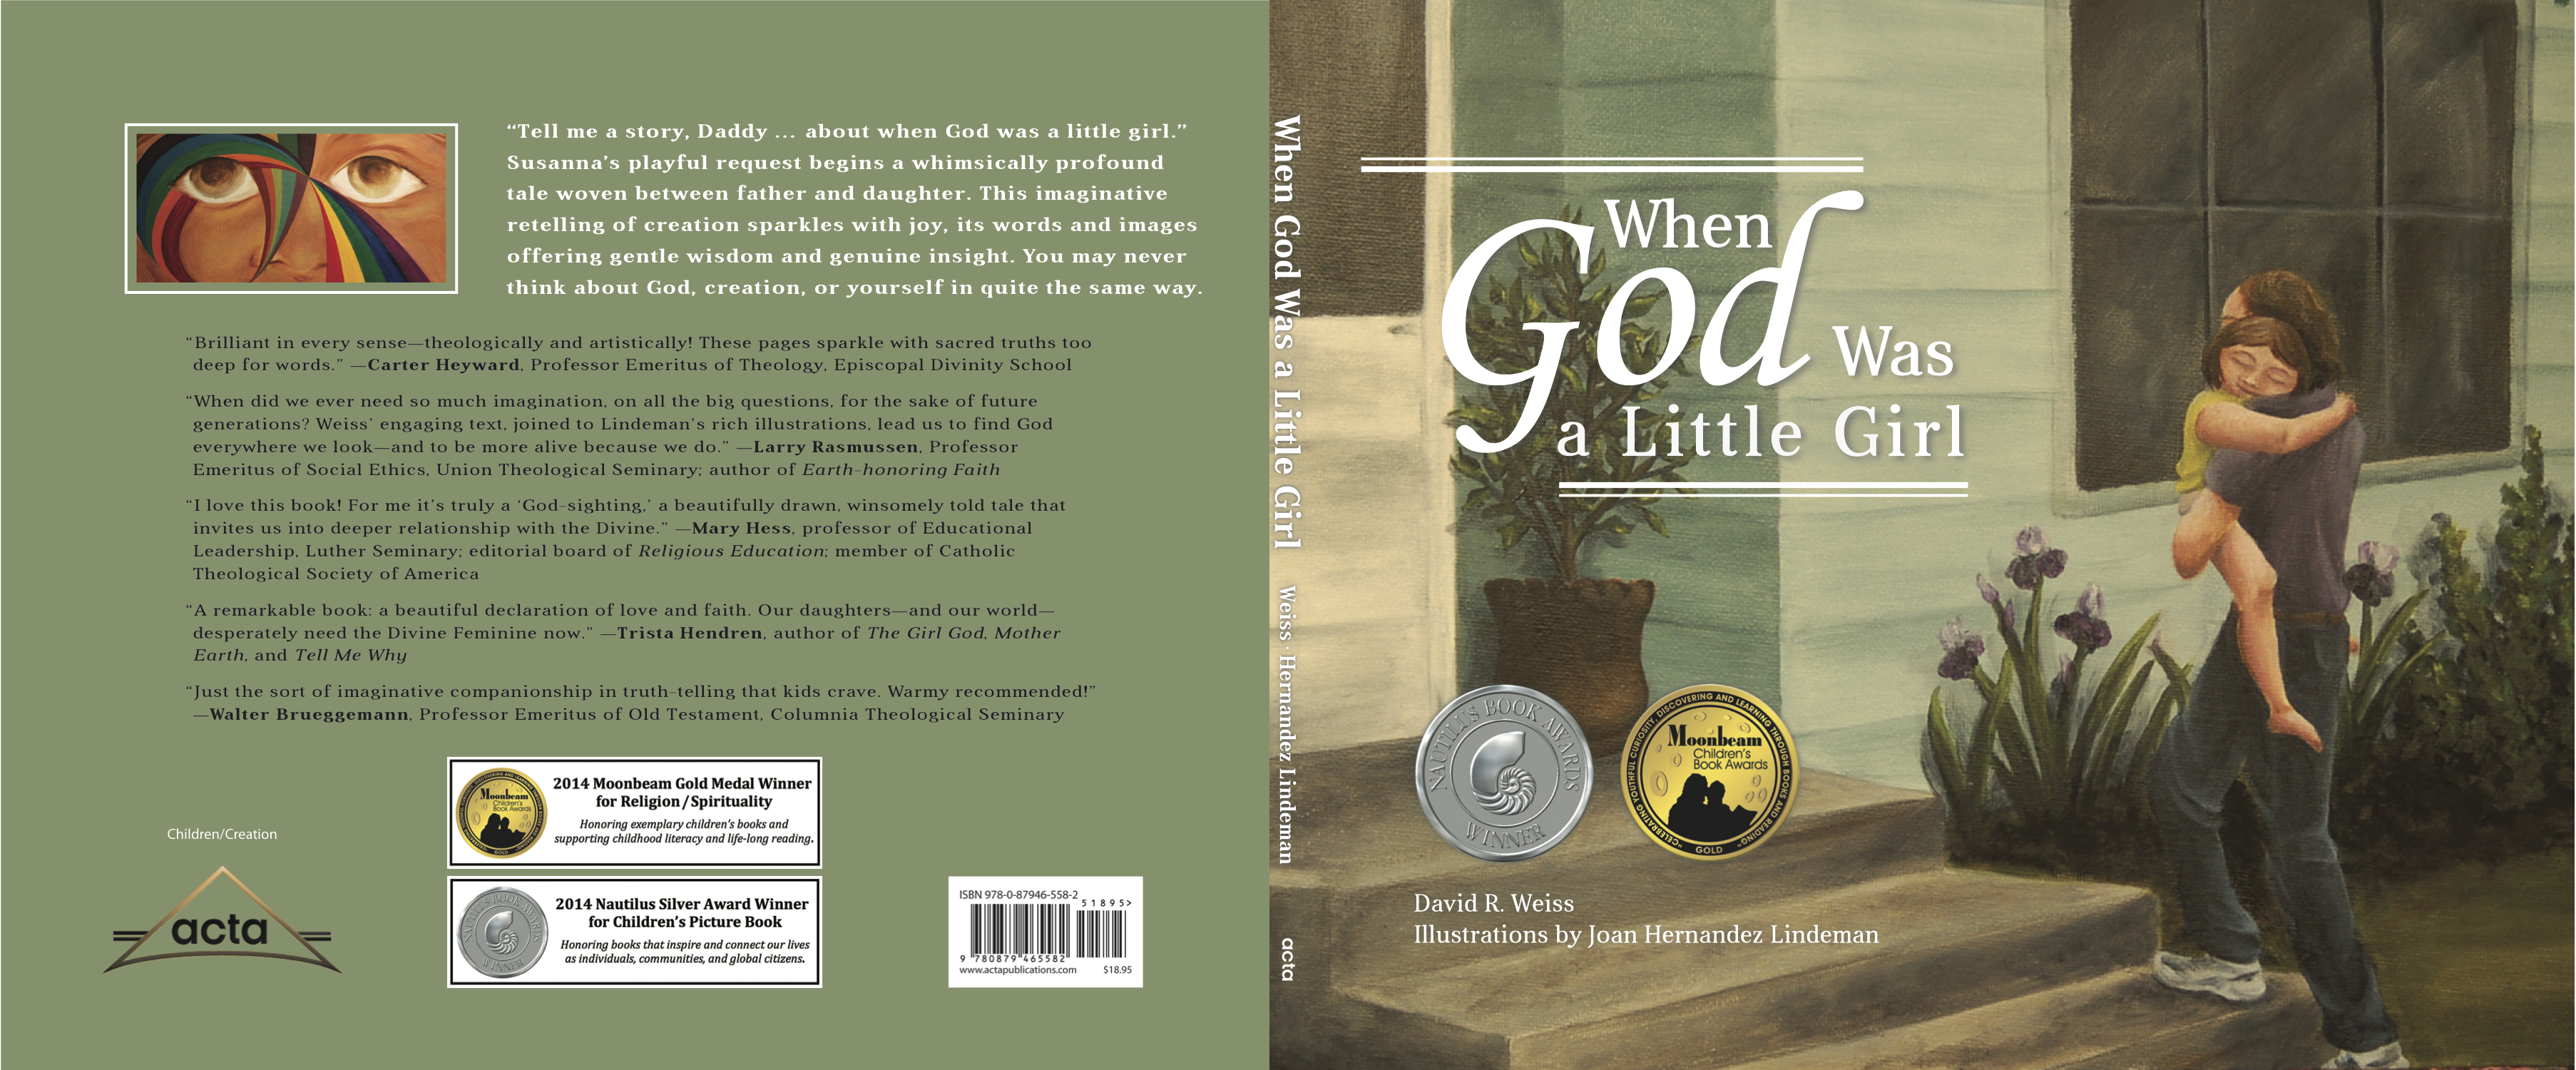 Where Is The Illustration On The Front Cover Of A Book ~ Exciting news about when god was a little girl when god was a